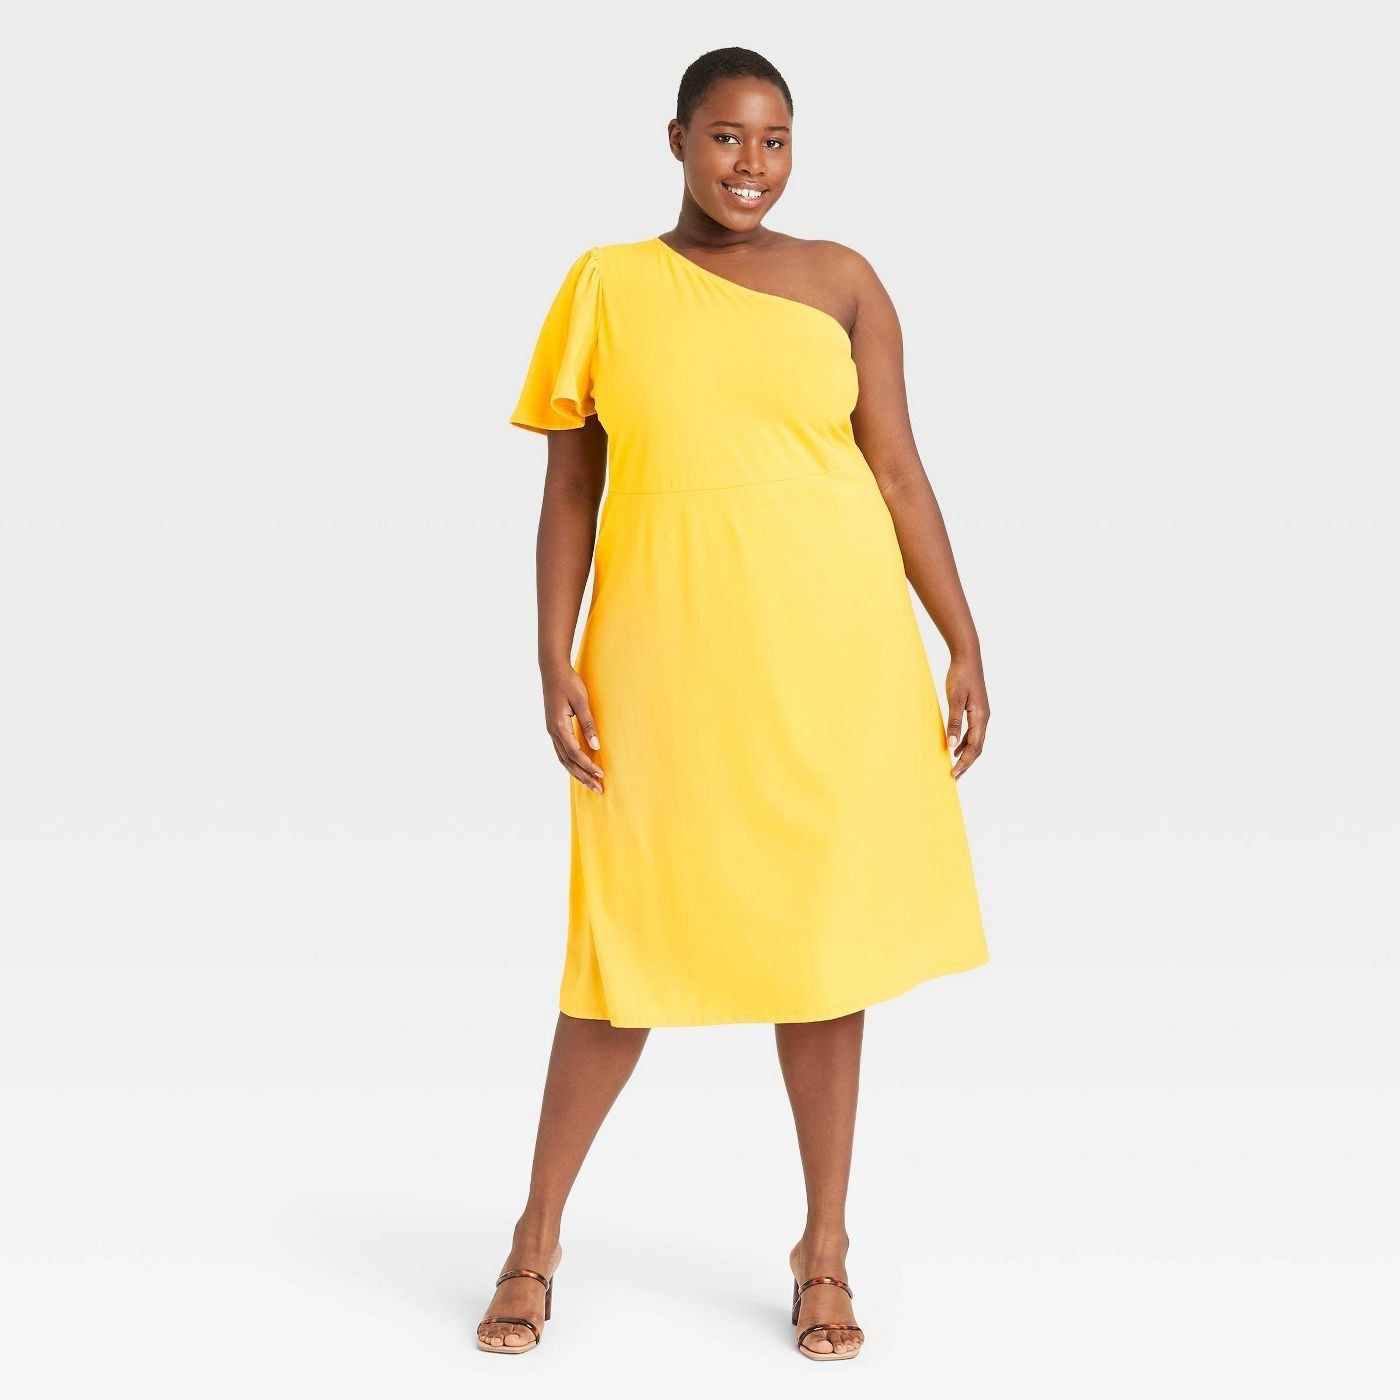 Model wearing yellow dress that goes past the knees